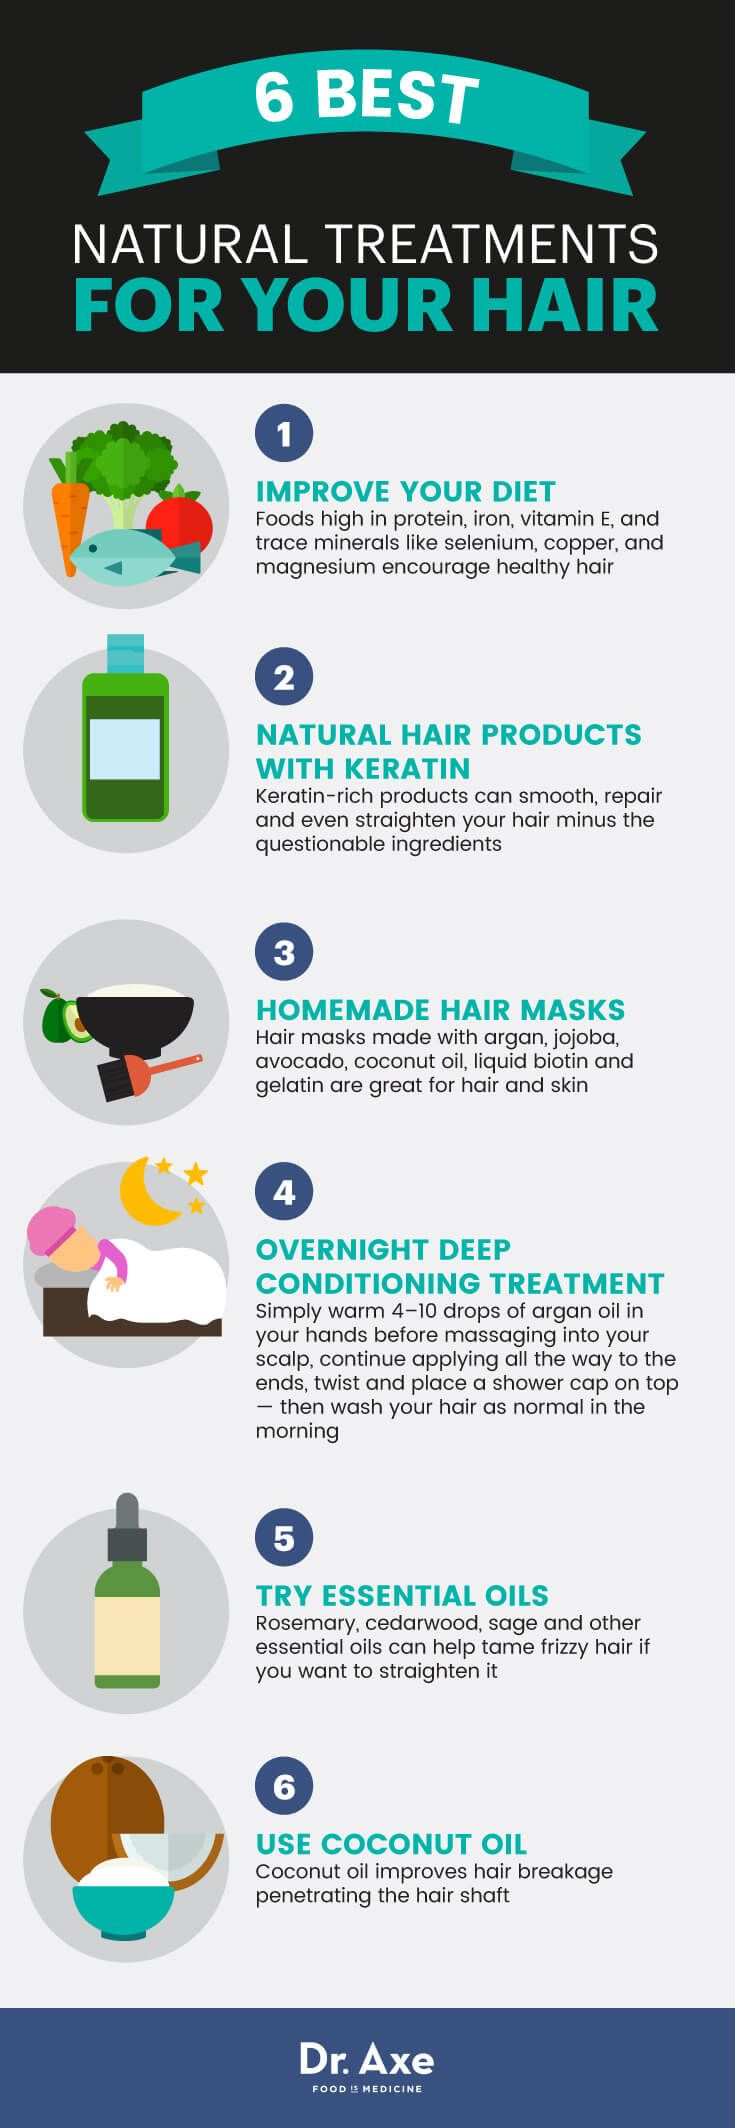 Natural treatments for hair - Dr. Axe http://www.draxe.com #health #holistic #natural